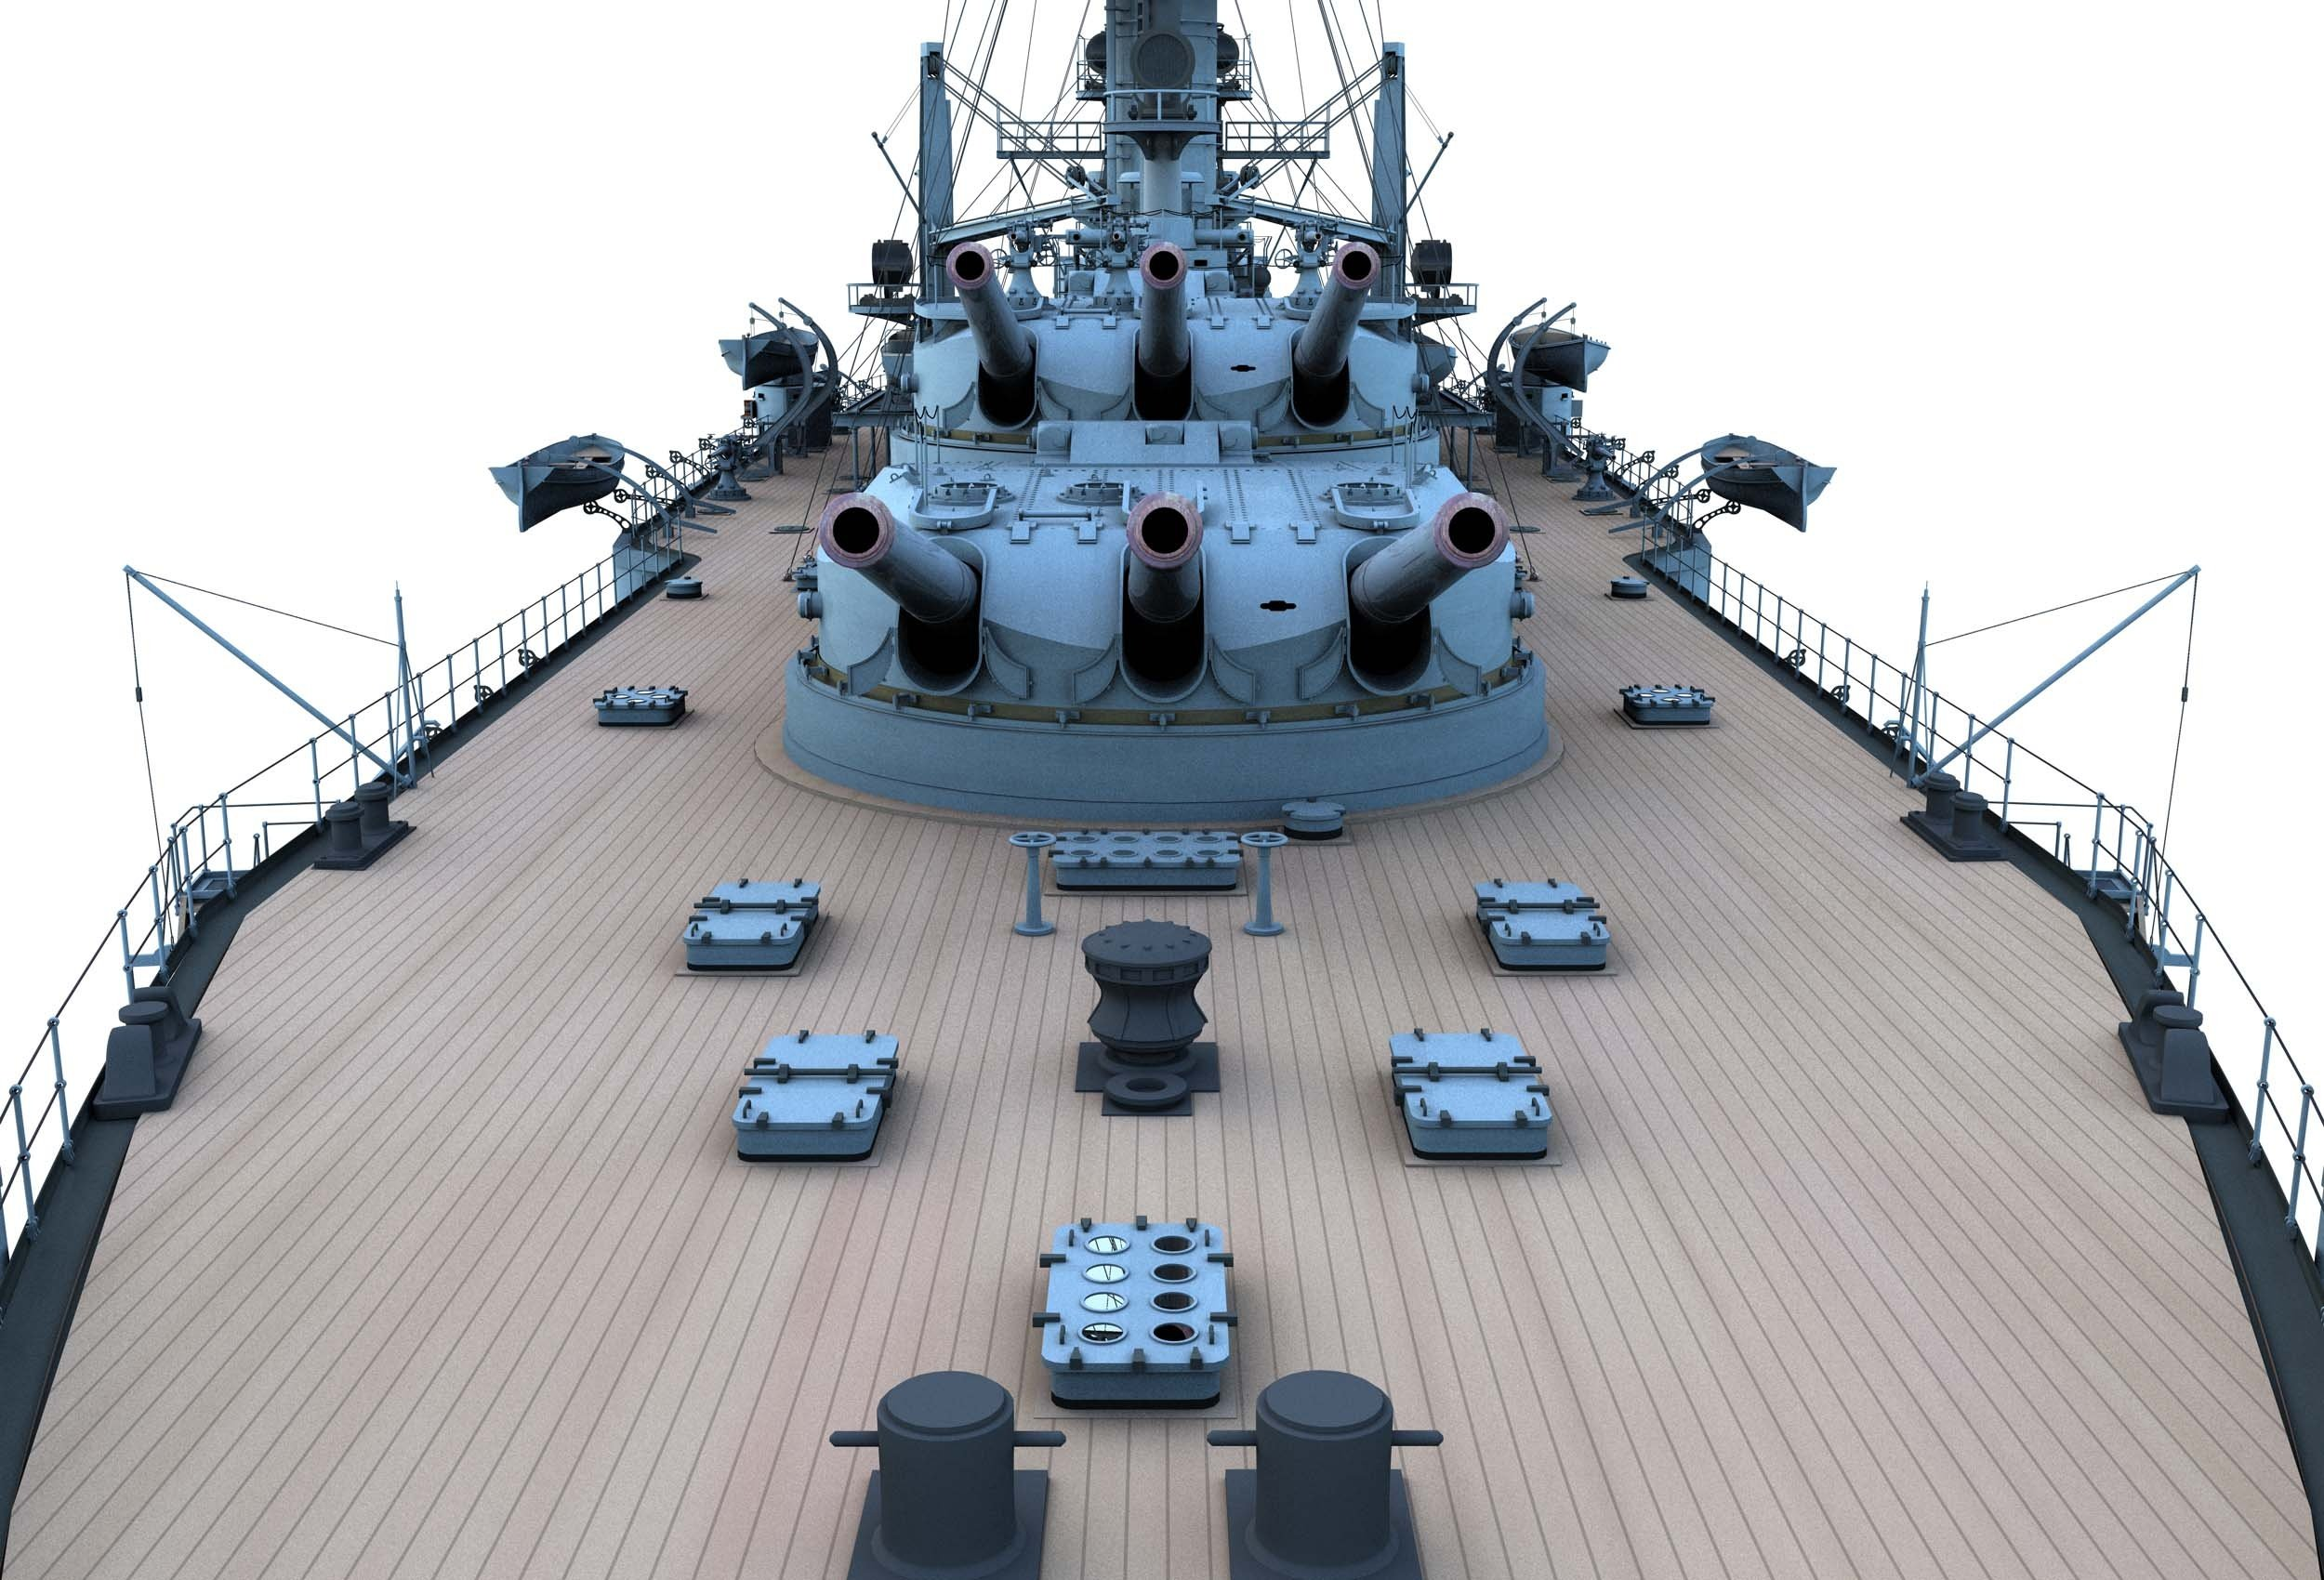 https://0901.nccdn.net/4_2/000/000/06b/a1b/CK14-Partial-Ship-Stern-Flagstaff-Looking-forward-2500x1700.jpg